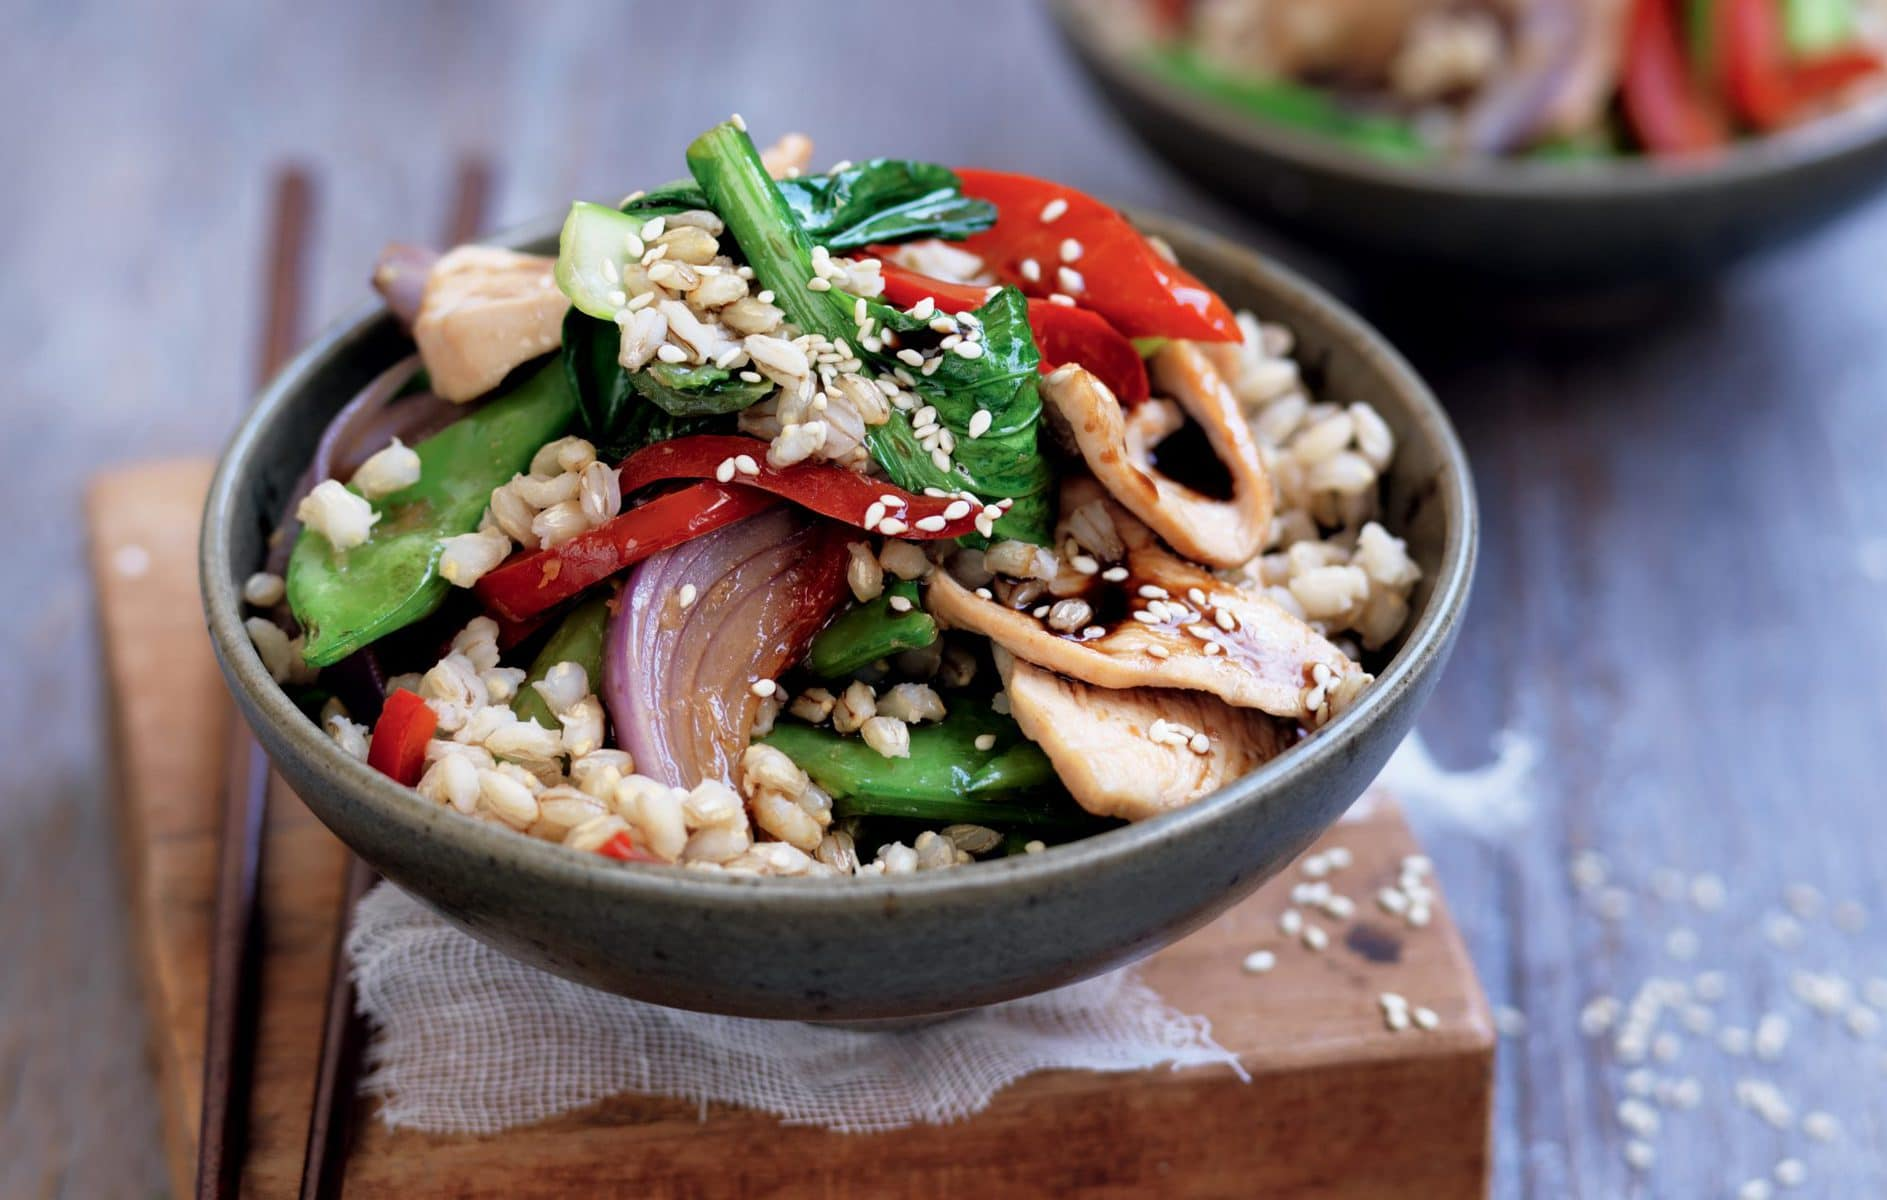 Stir-fried barley with chicken and bok choy